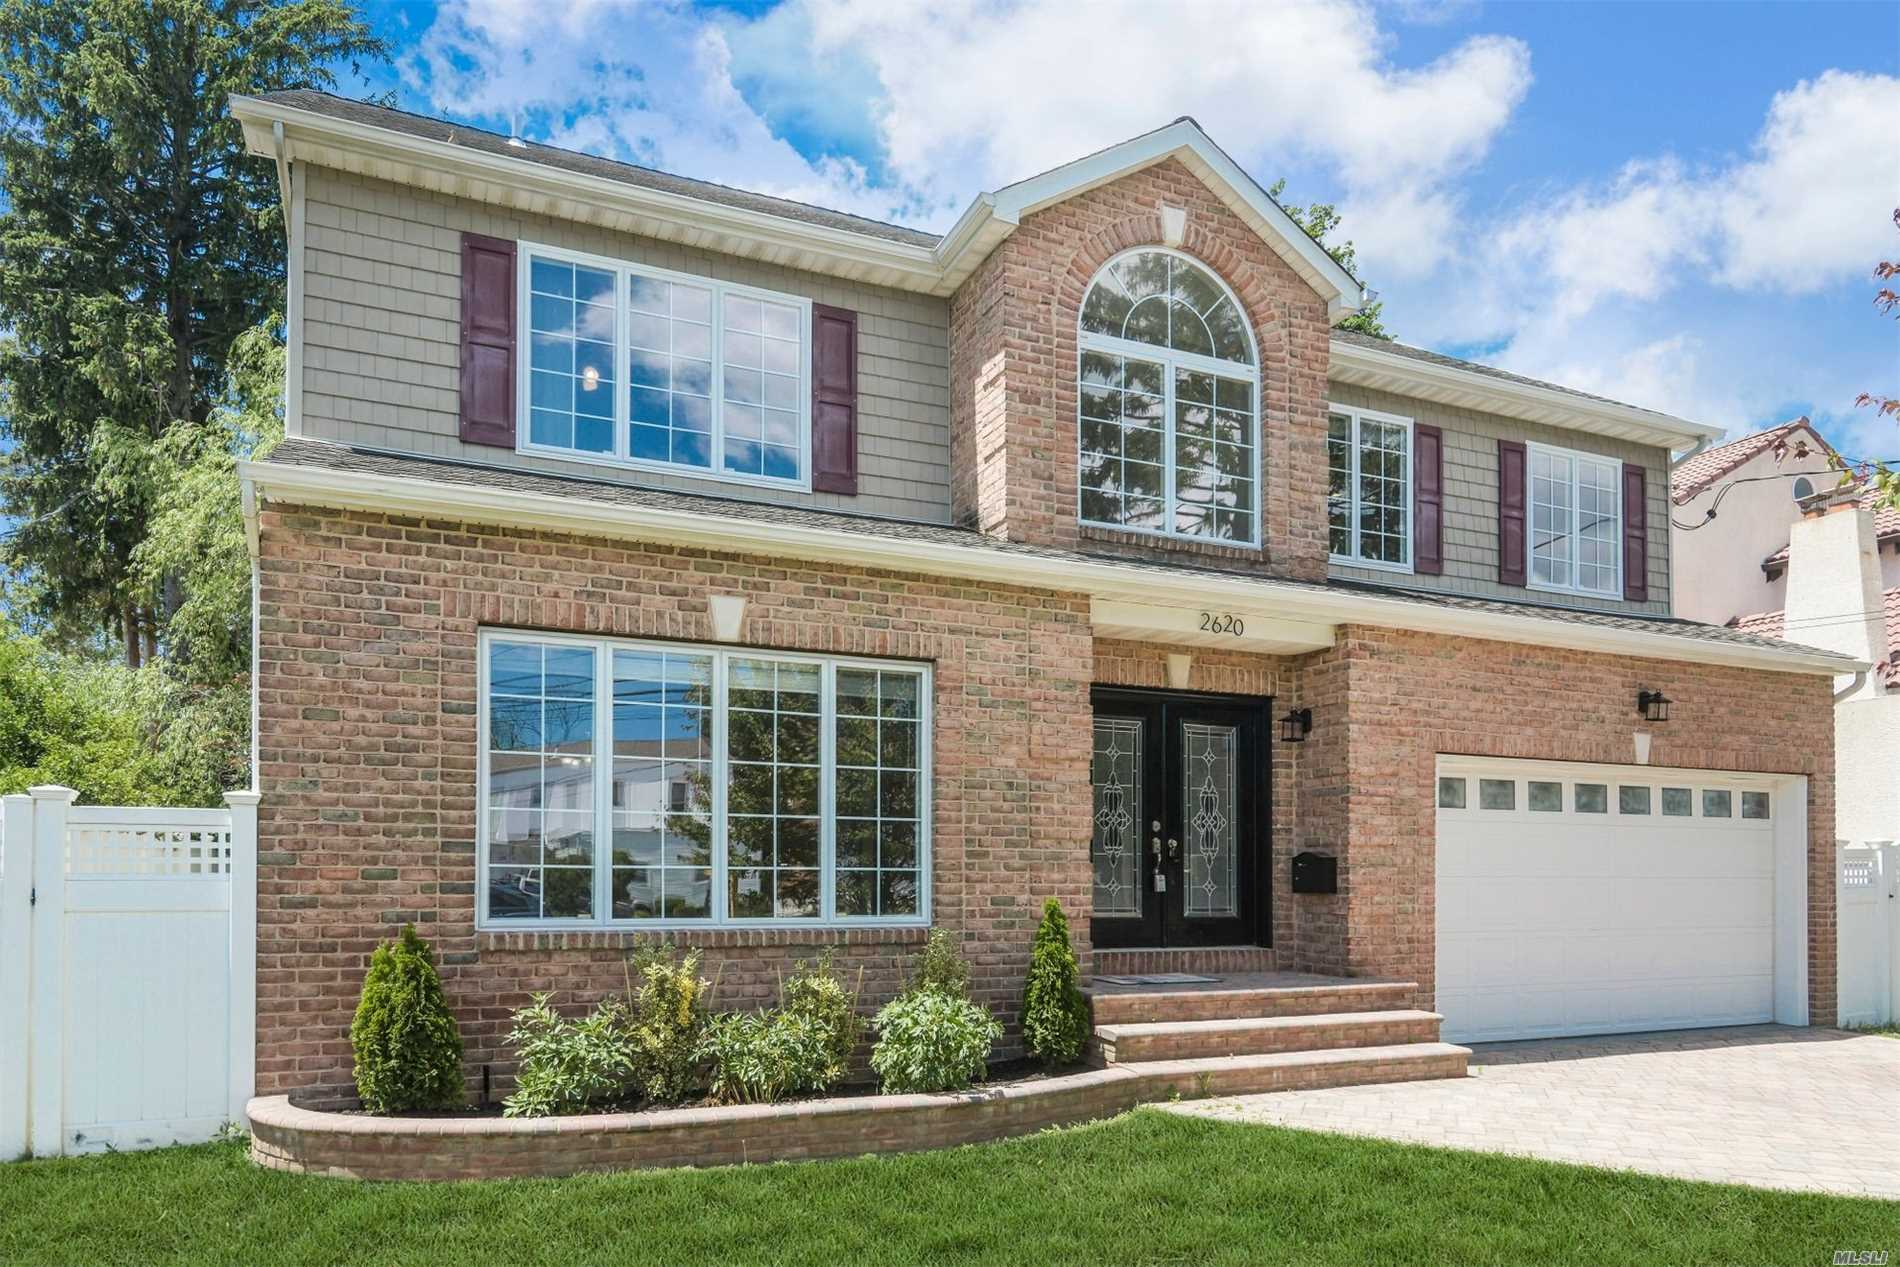 Gorgeous & Young, South Of Merrick Road Colonial! Pack Your Bags & Move Right Into This Amazing Home! Enjoy Your Master Suite With A Jacuzzi & Walk-In Closets! Fireplace, Wood Floors, Cac, Grand Cathedral Foyer & Much More! This Is A Must See For Yourself!